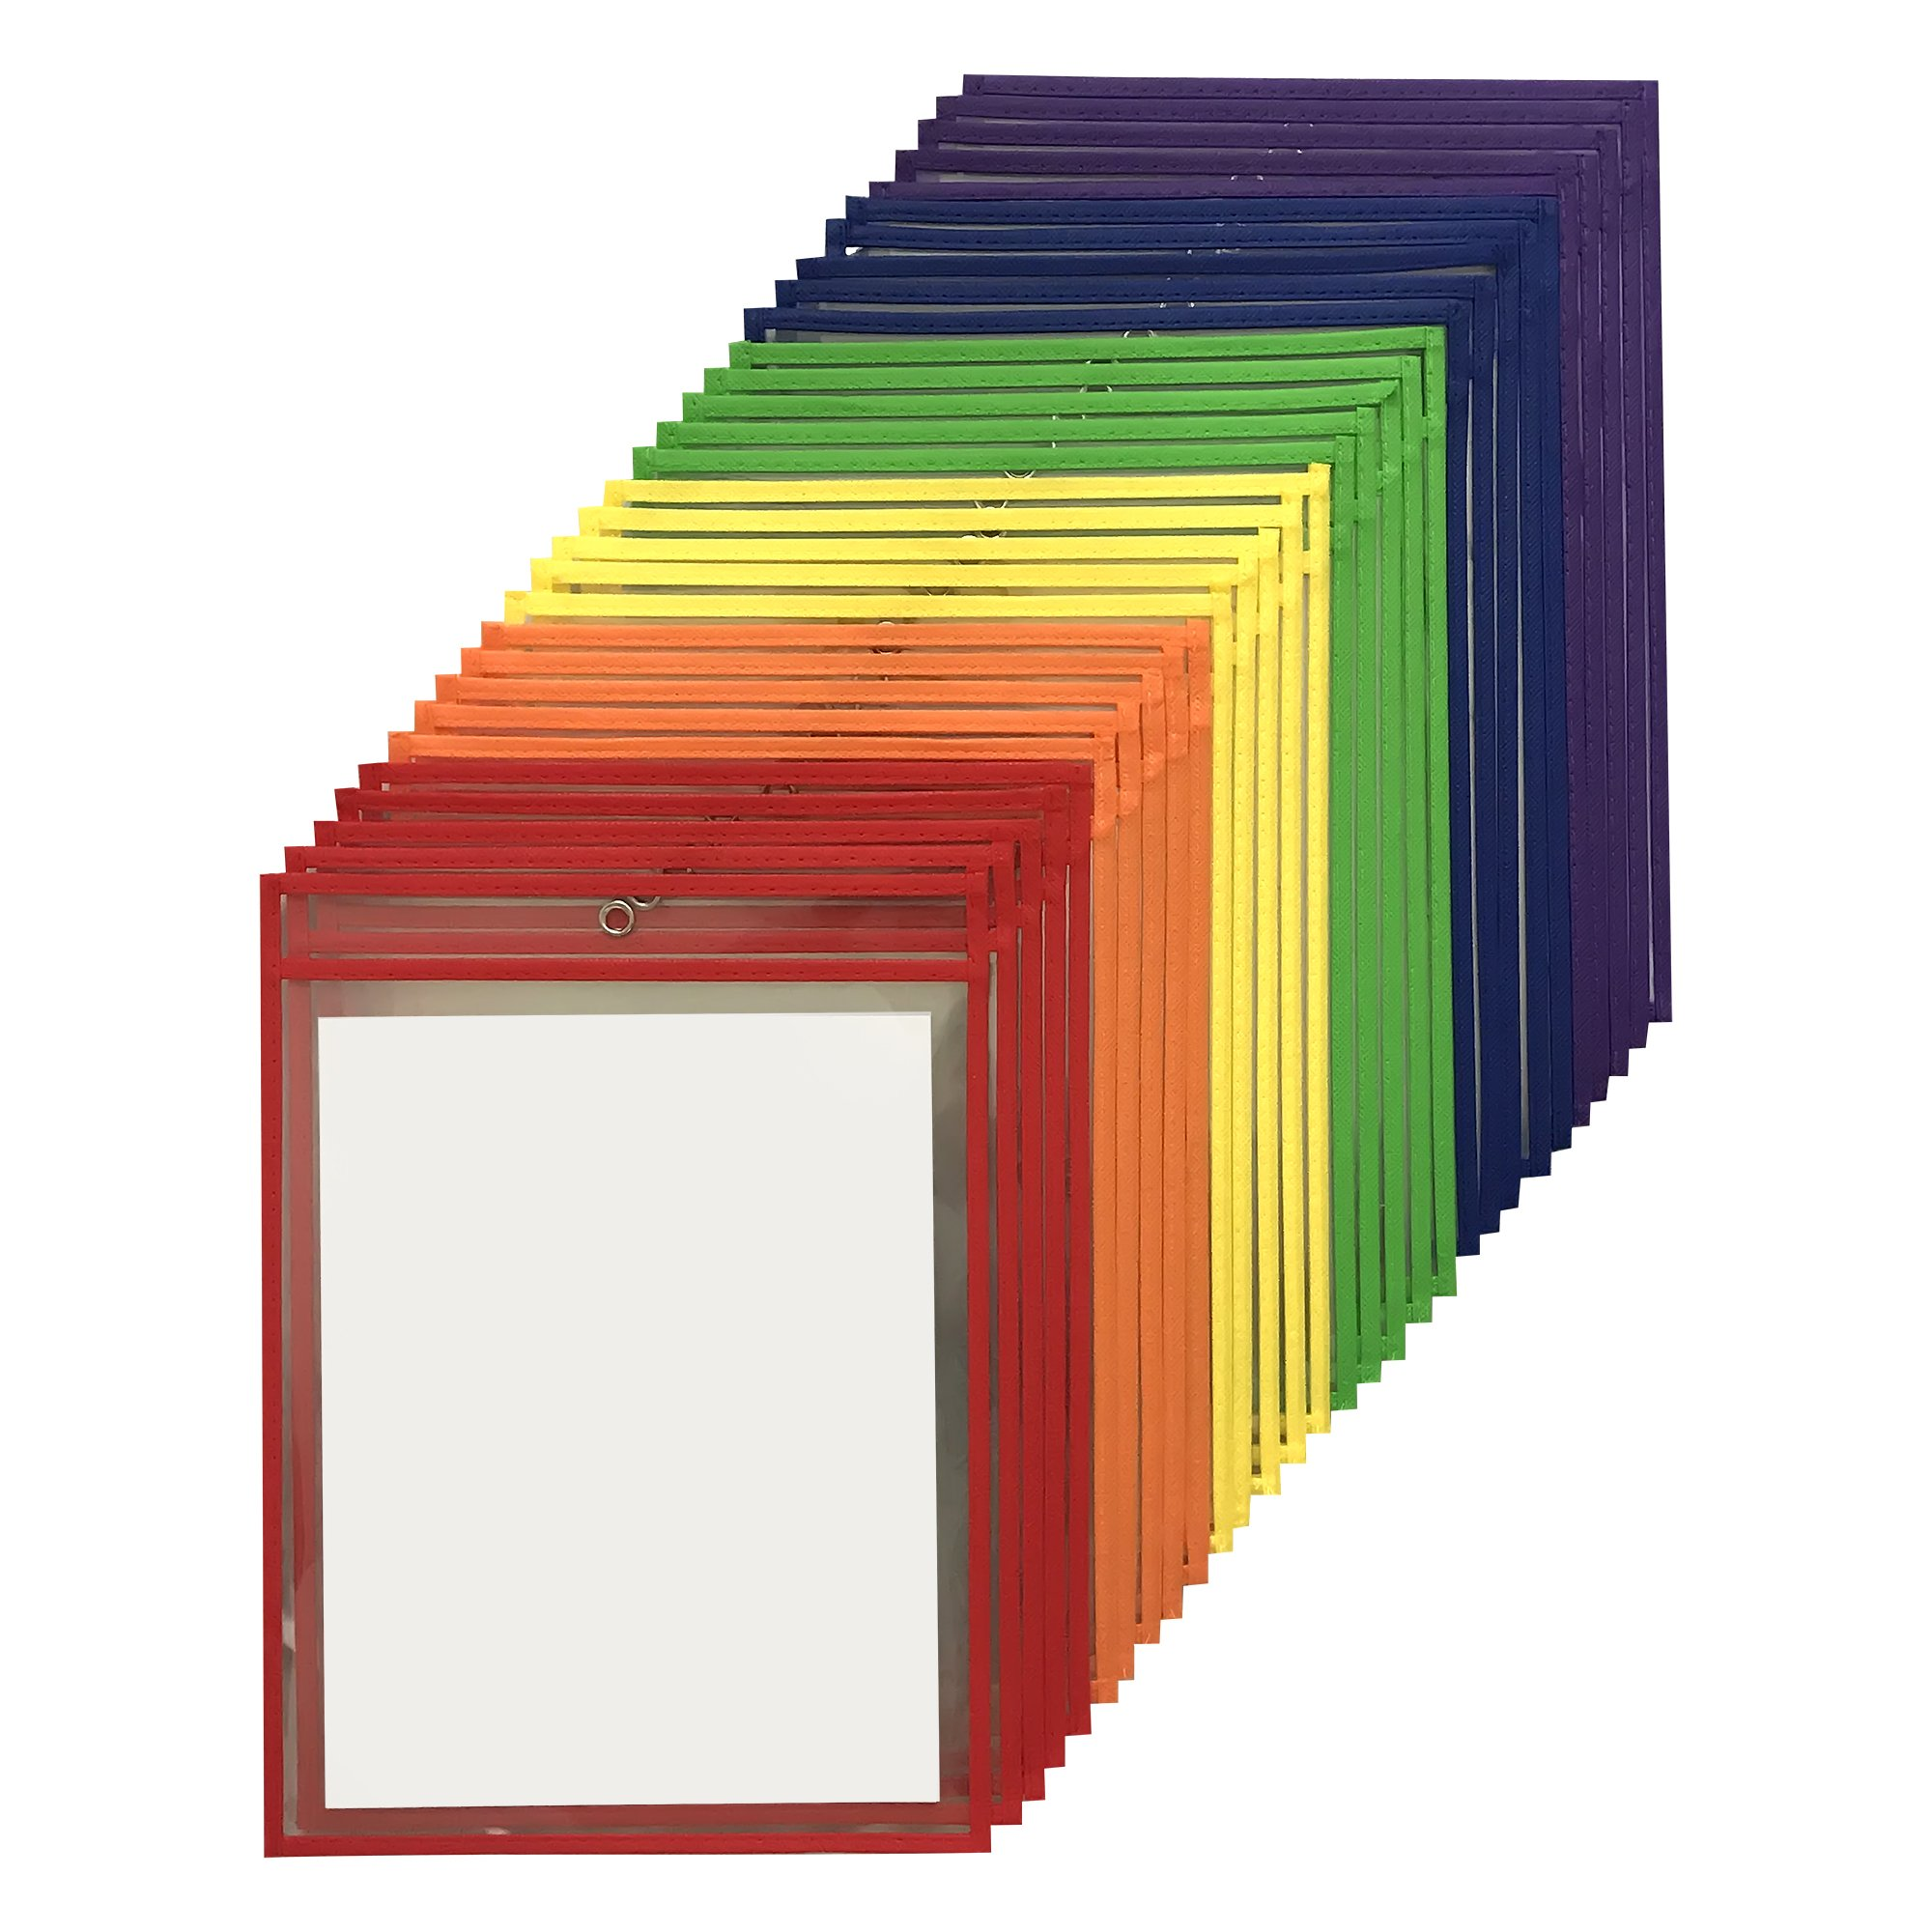 """30 Pack Dry Erase Pockets – Assorted Colors – By Essex Wares – For Teacher Lessons in a Classroom or For Use at Your Home or Office – Fits Standard 8.5"""" X 11"""" Paper"""